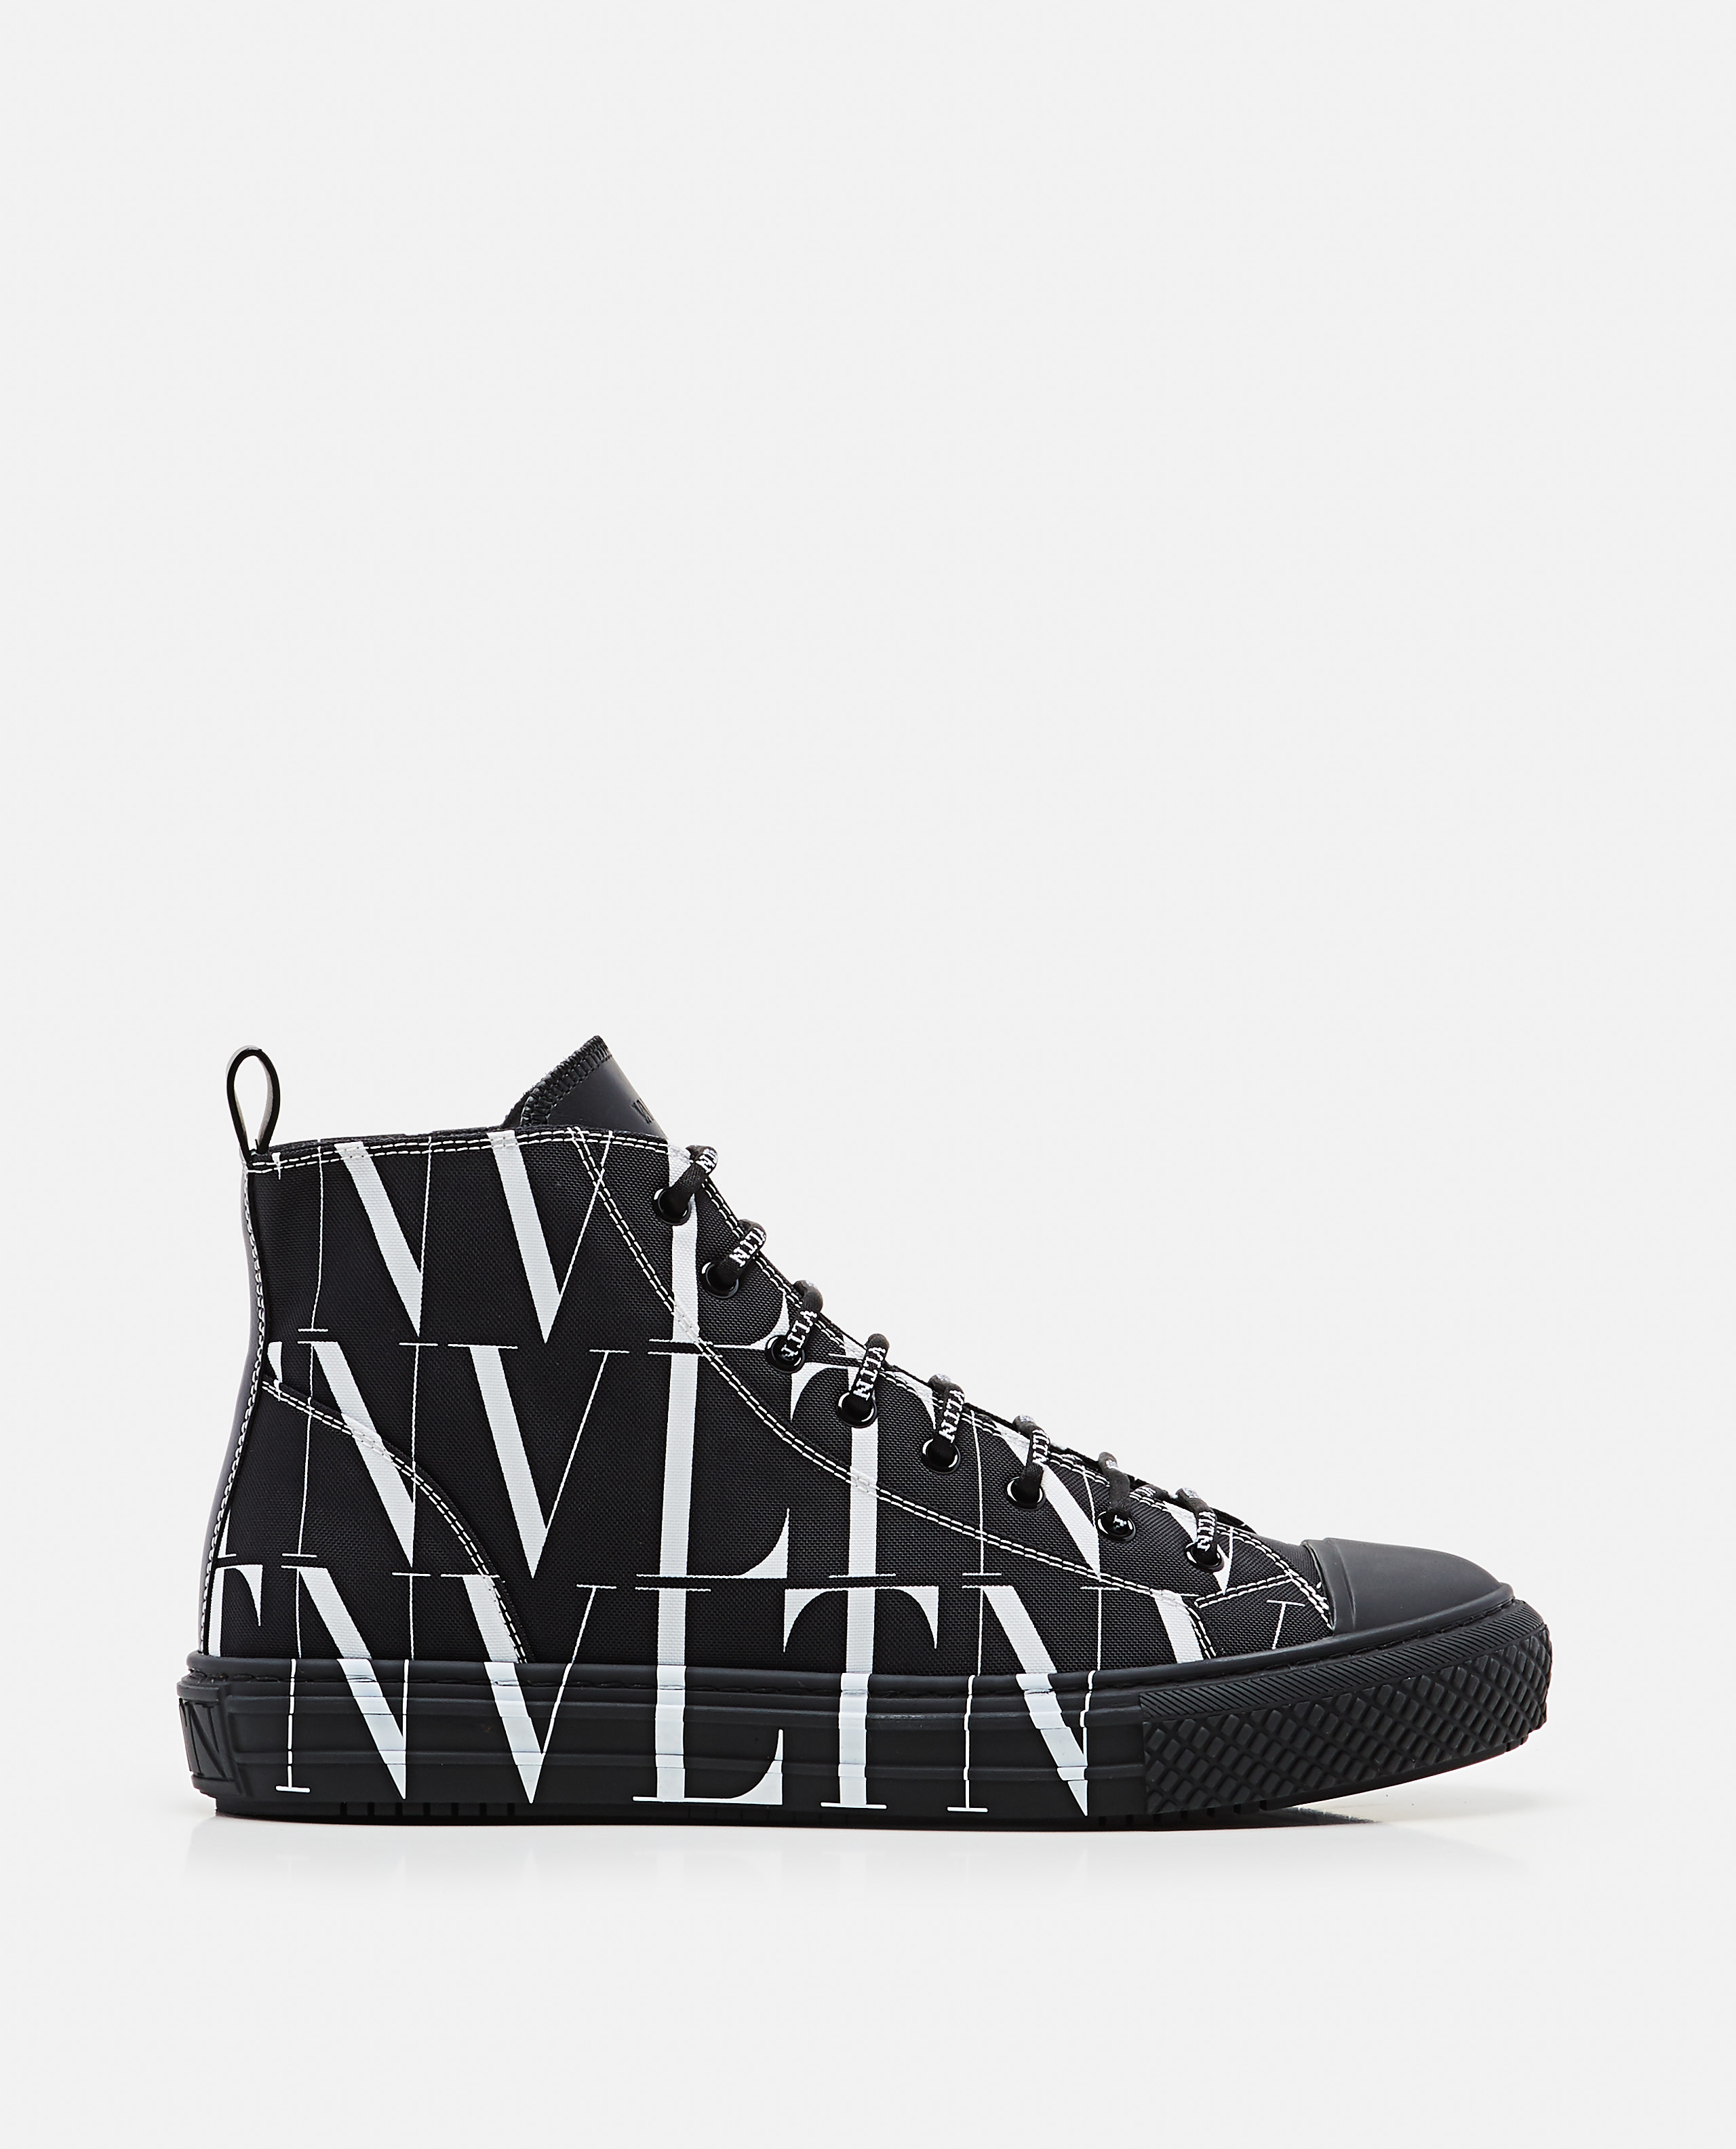 VLTN high black sneaker